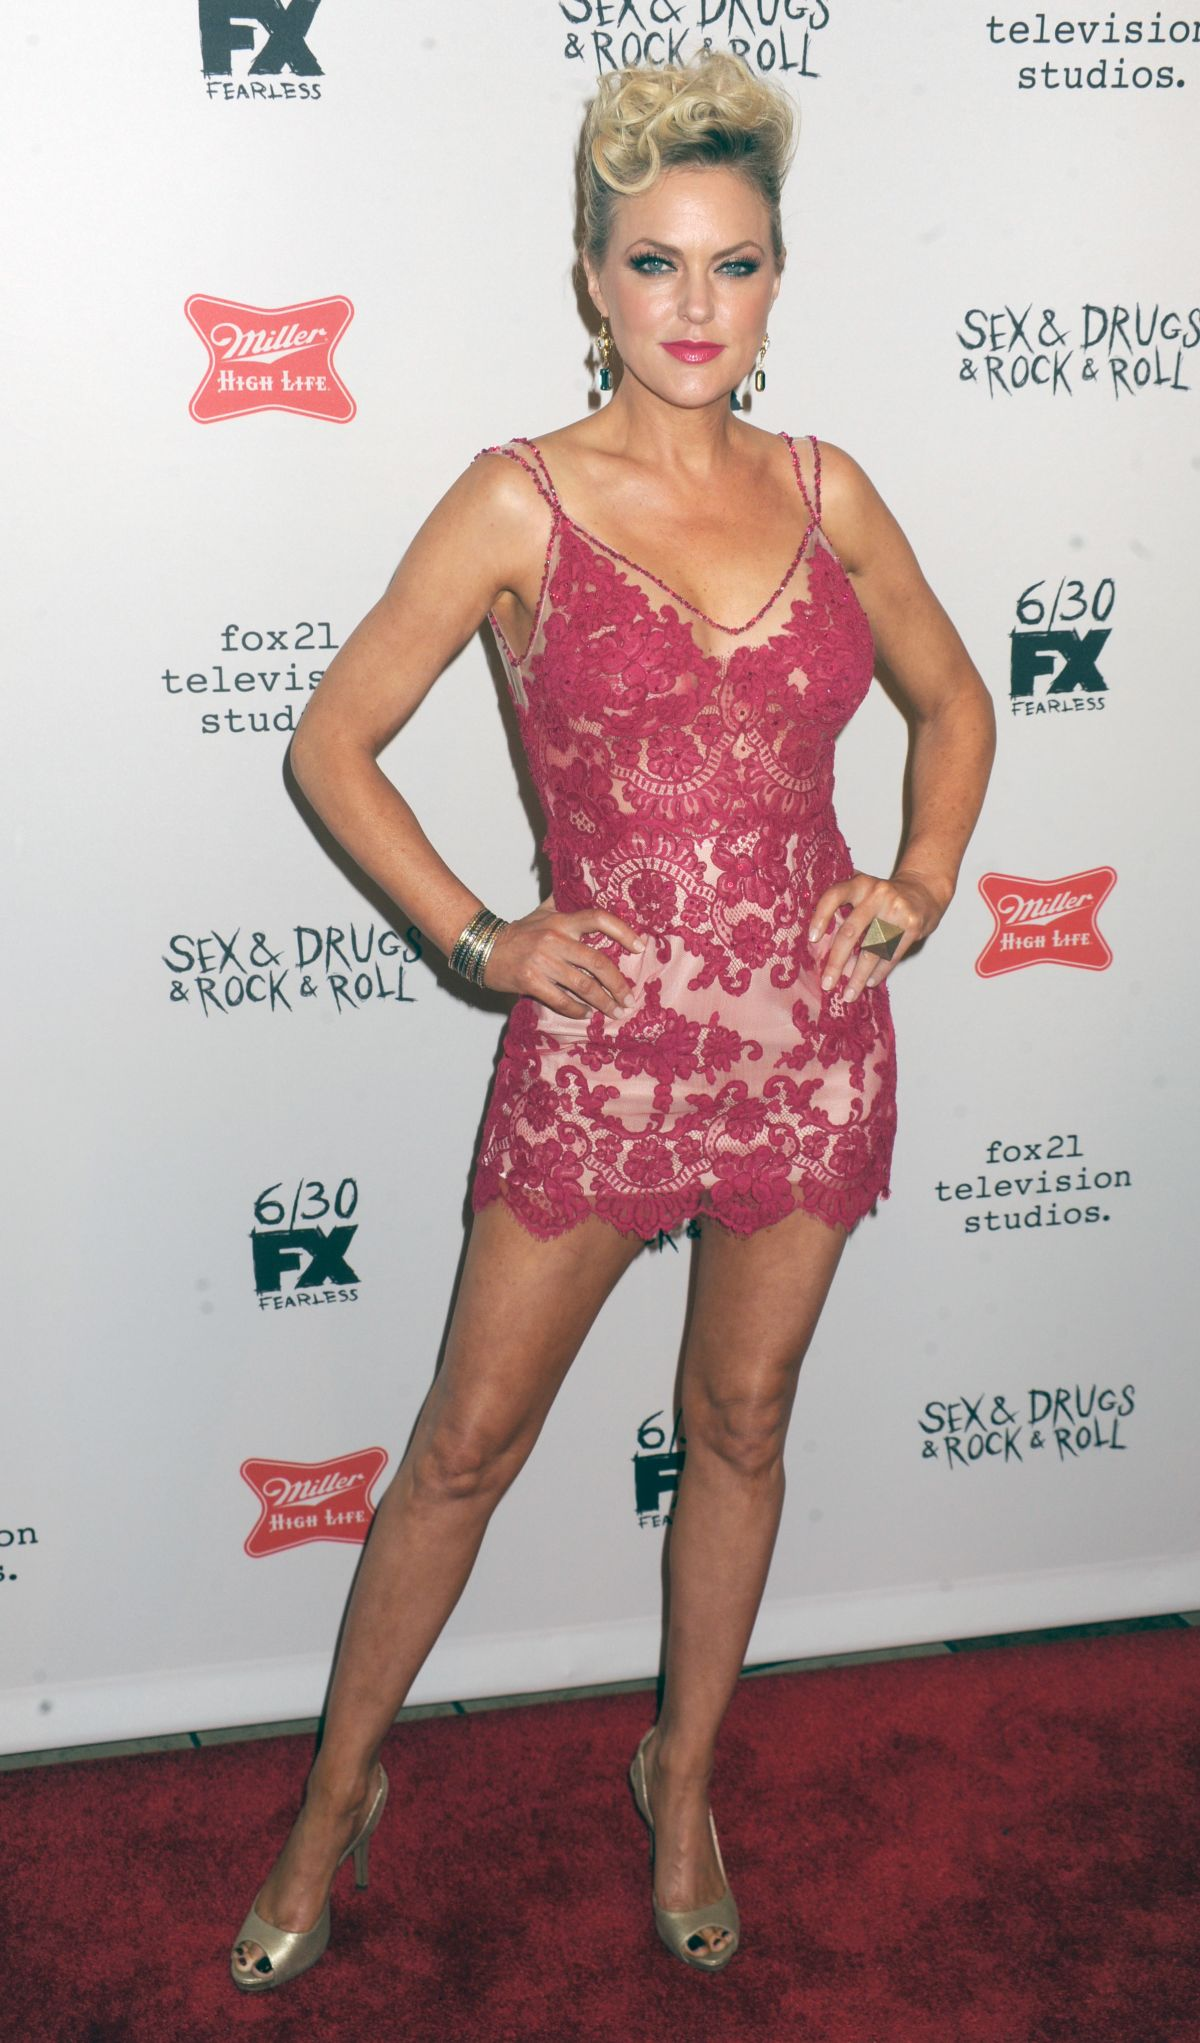 ELAINE HENDRIX at Sex & Drugs & Rock & Roll Season 2 Premiere 06/28/2016